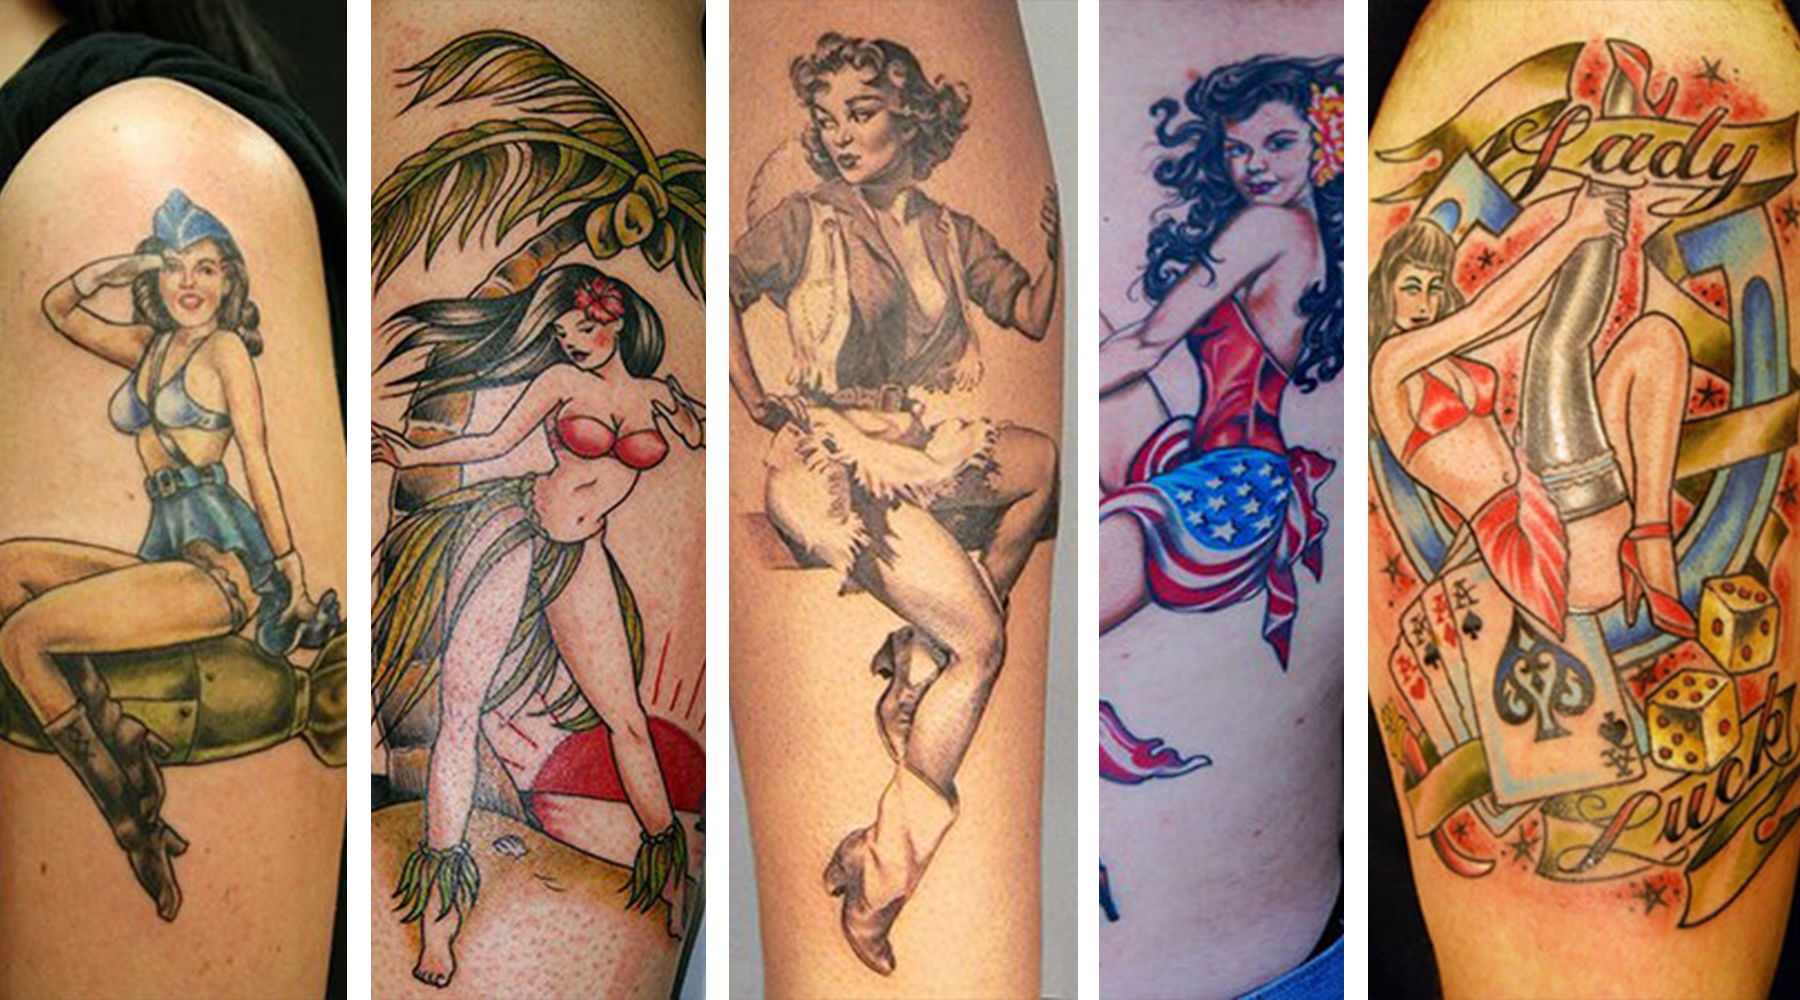 As one of the most explicit expressions of femininity and beauty, pin up girl tattoo designs have generated a lot of interest and controversy. They originated in World War II era, when men from the Na...